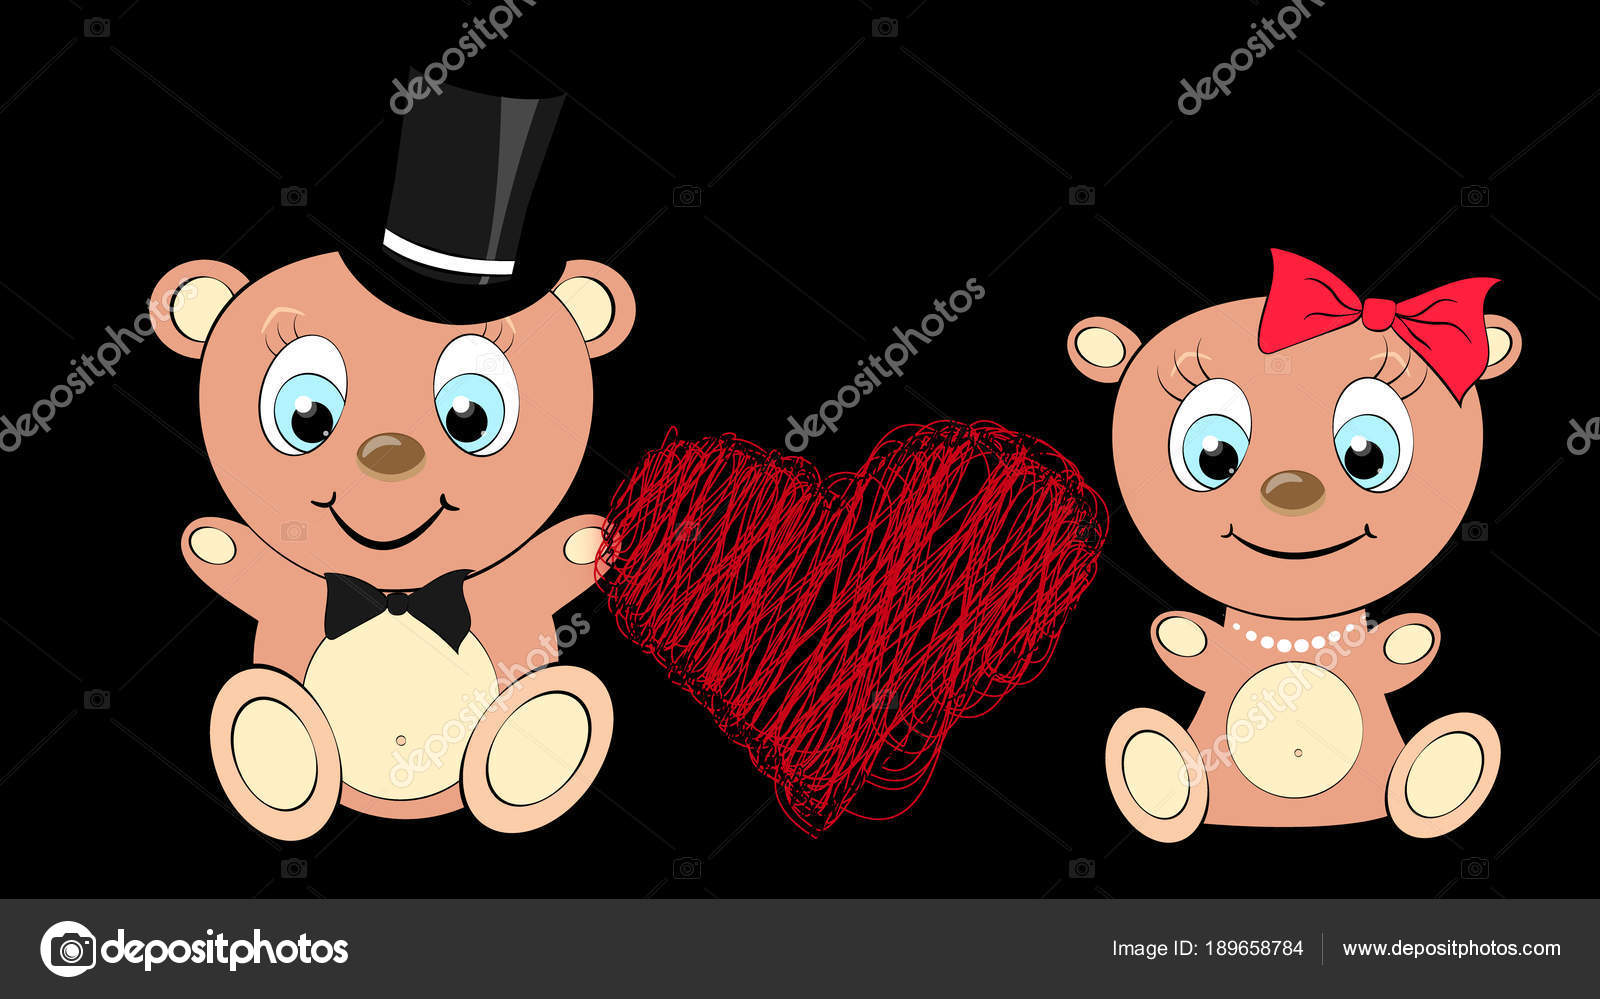 Two Lovers Cute Beautiful Brown Bear Girl And Boy With Big Head And Blue Eyes In A Cylinder And Bow Tie Bow And Pearl Necklace On A Black Background And